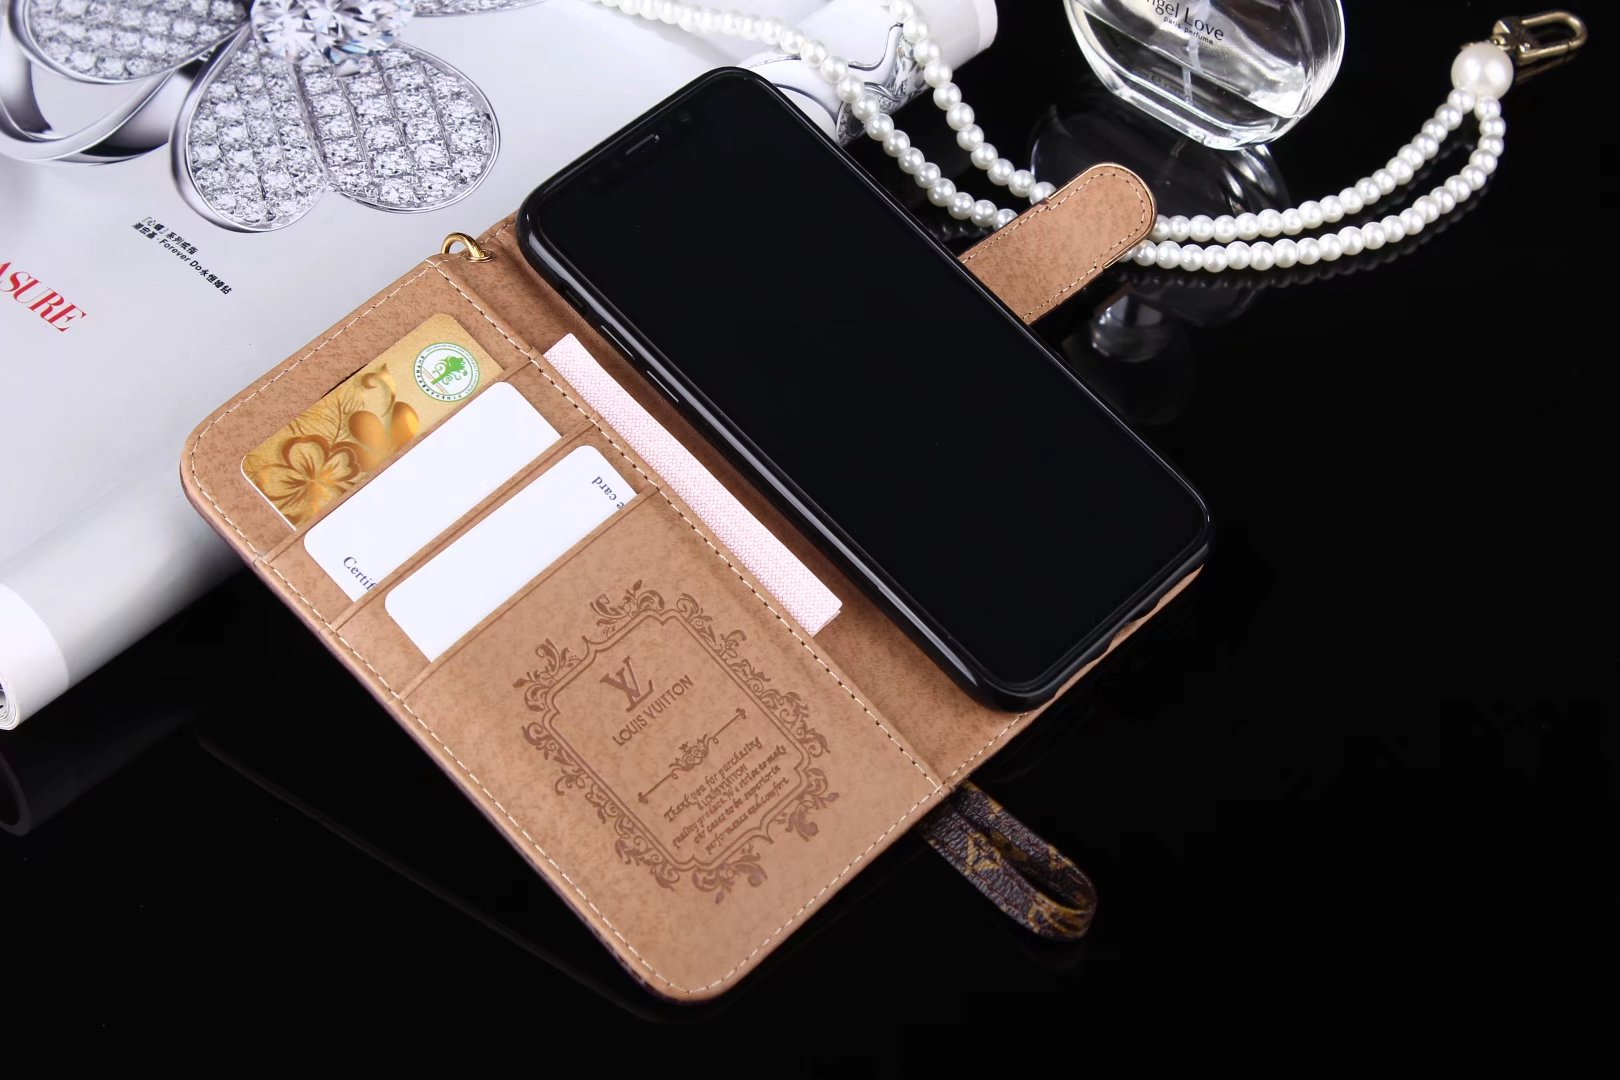 iphone case erstellen iphone hülle selbst Louis Vuitton iphone X hüllen handy caX mit foto günstige handyhüllen iphone X iphone X glitzer hülle iphone X hülle kartenfach die coolsten iphone X hüllen iphone sX hülle